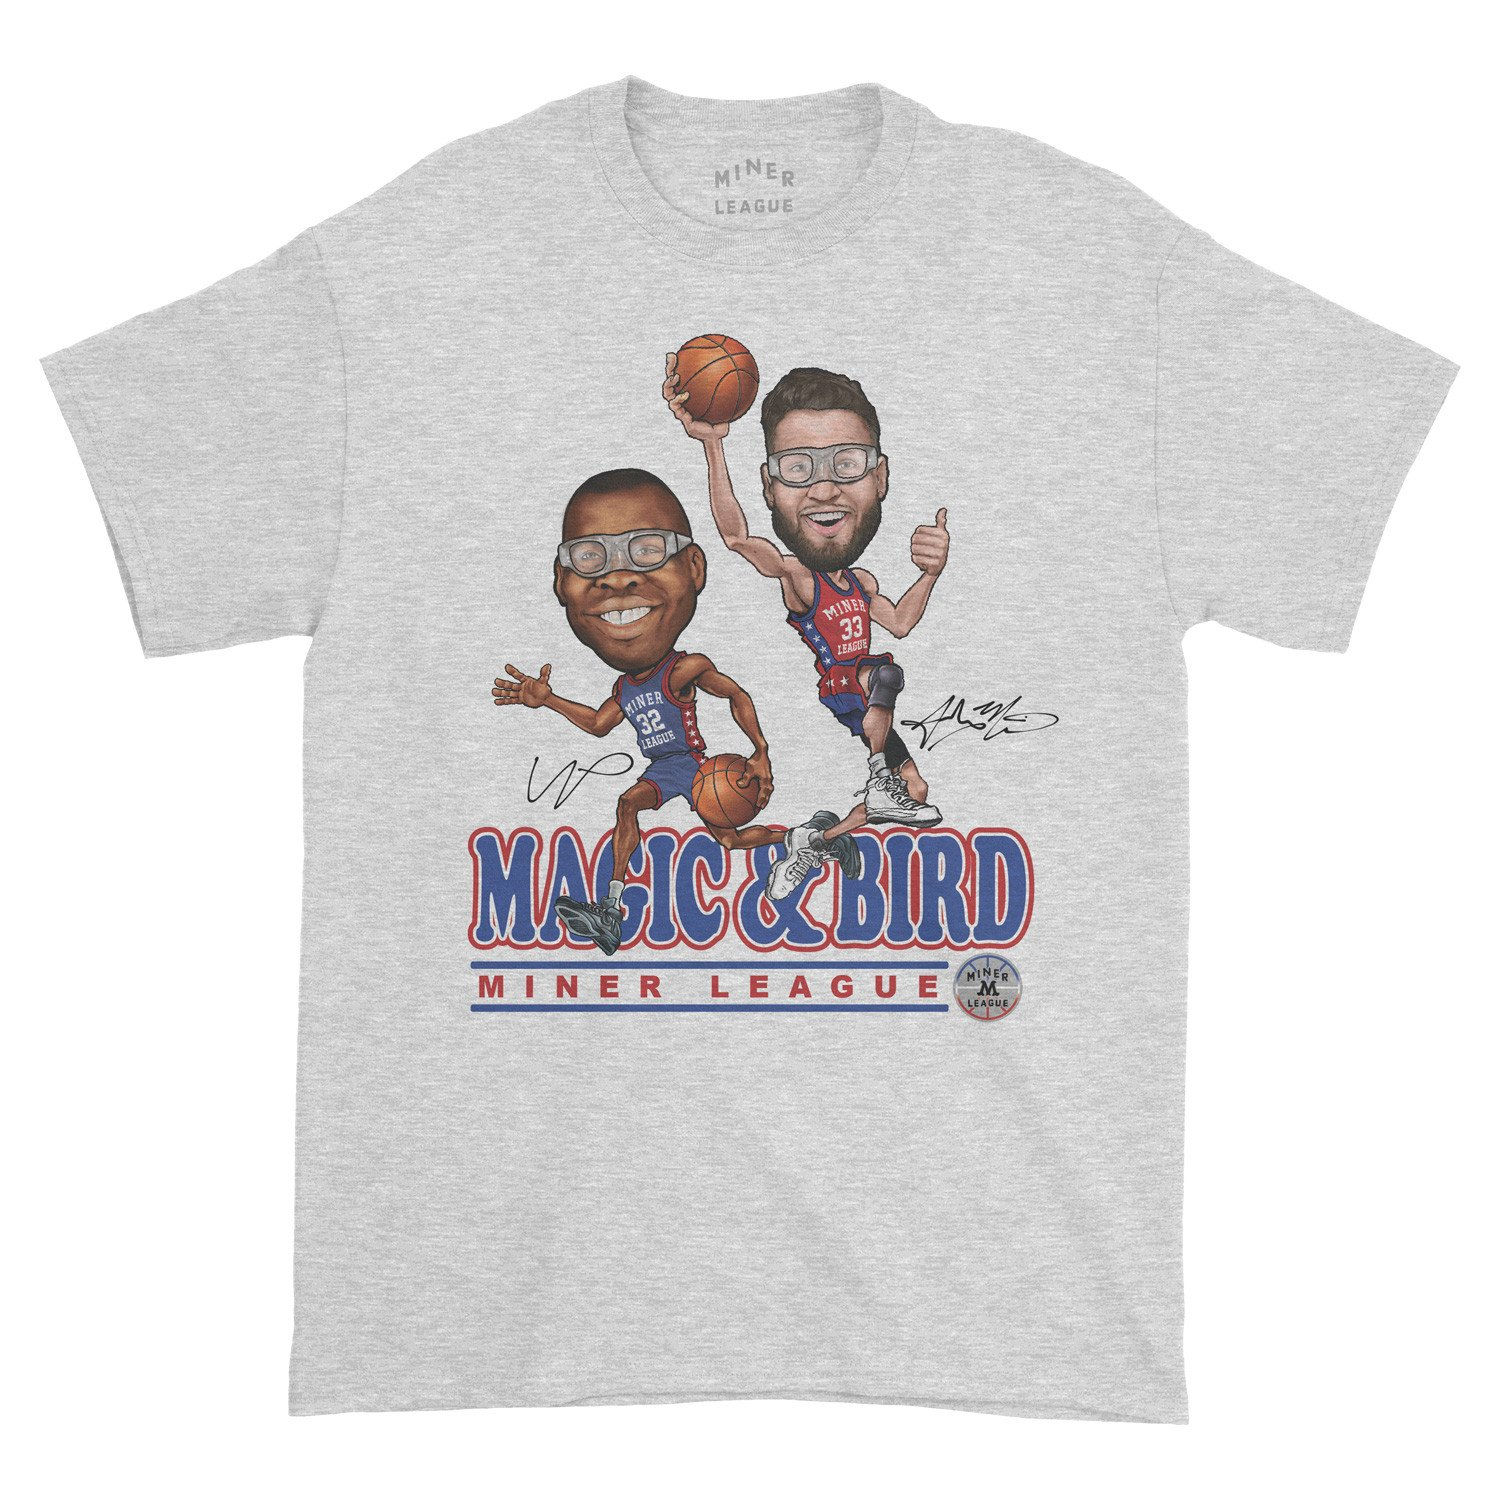 MAGIC_BIRD_tee2_2000x2000.jpg